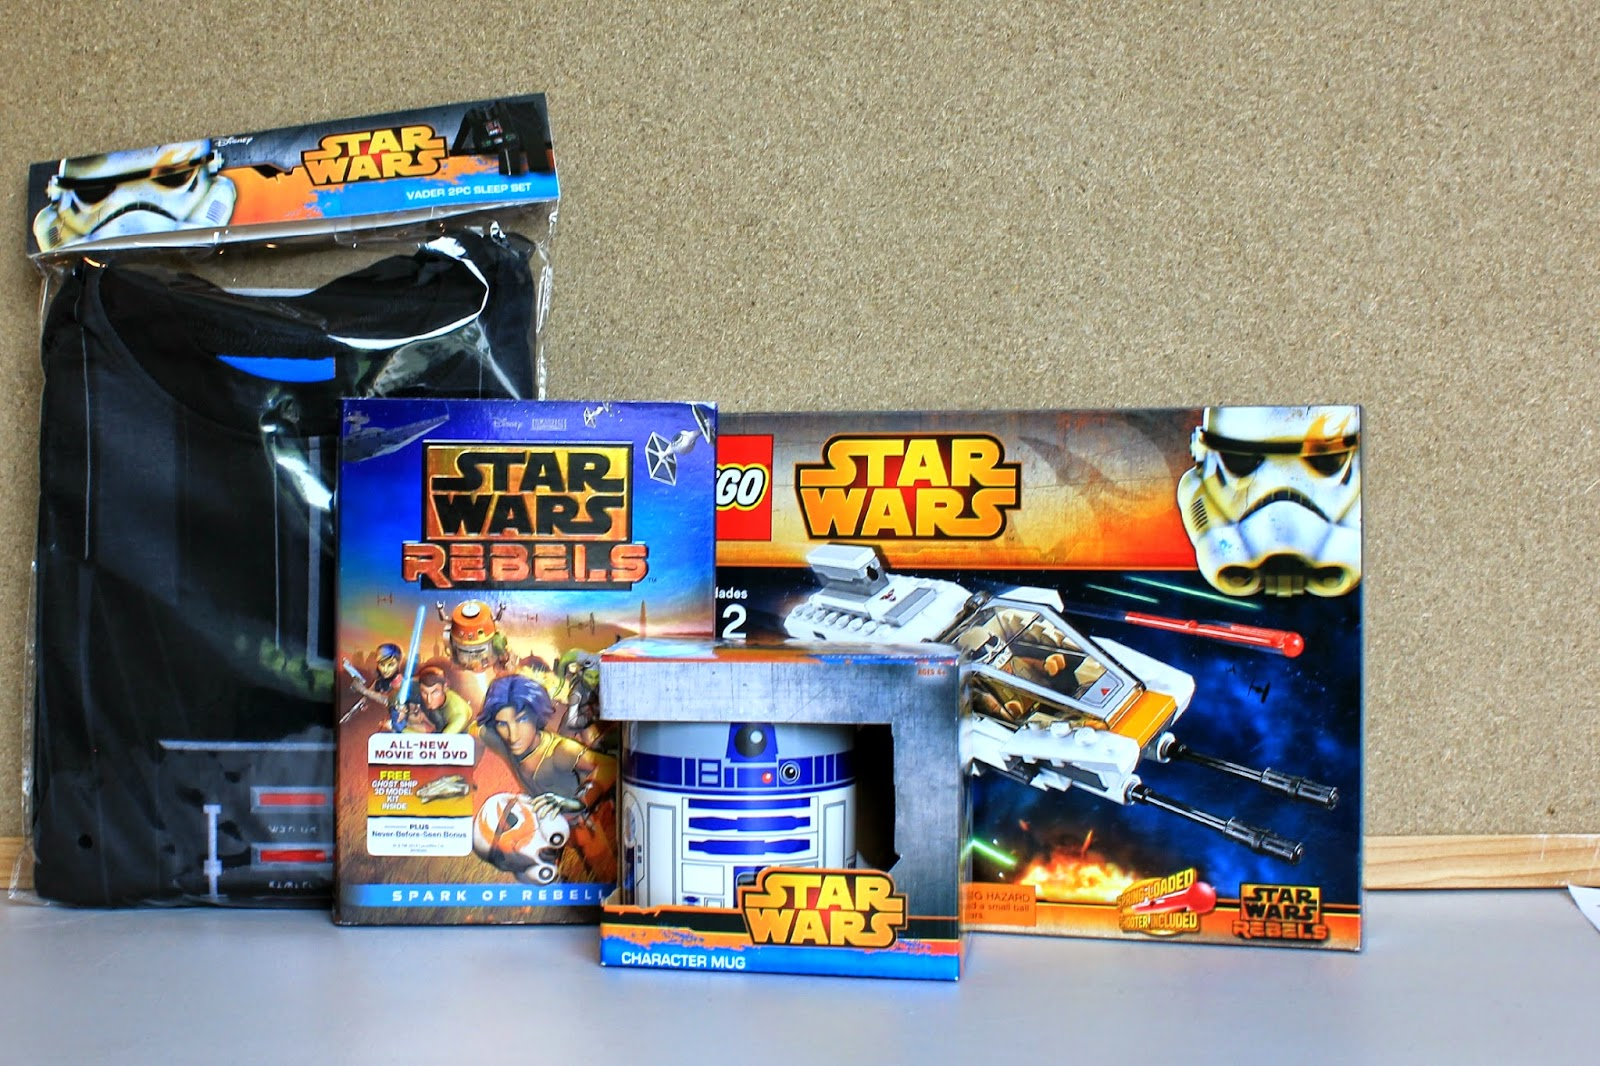 Become part of the rebellion with Star Wars Rebels! #SparkRebellion #shop